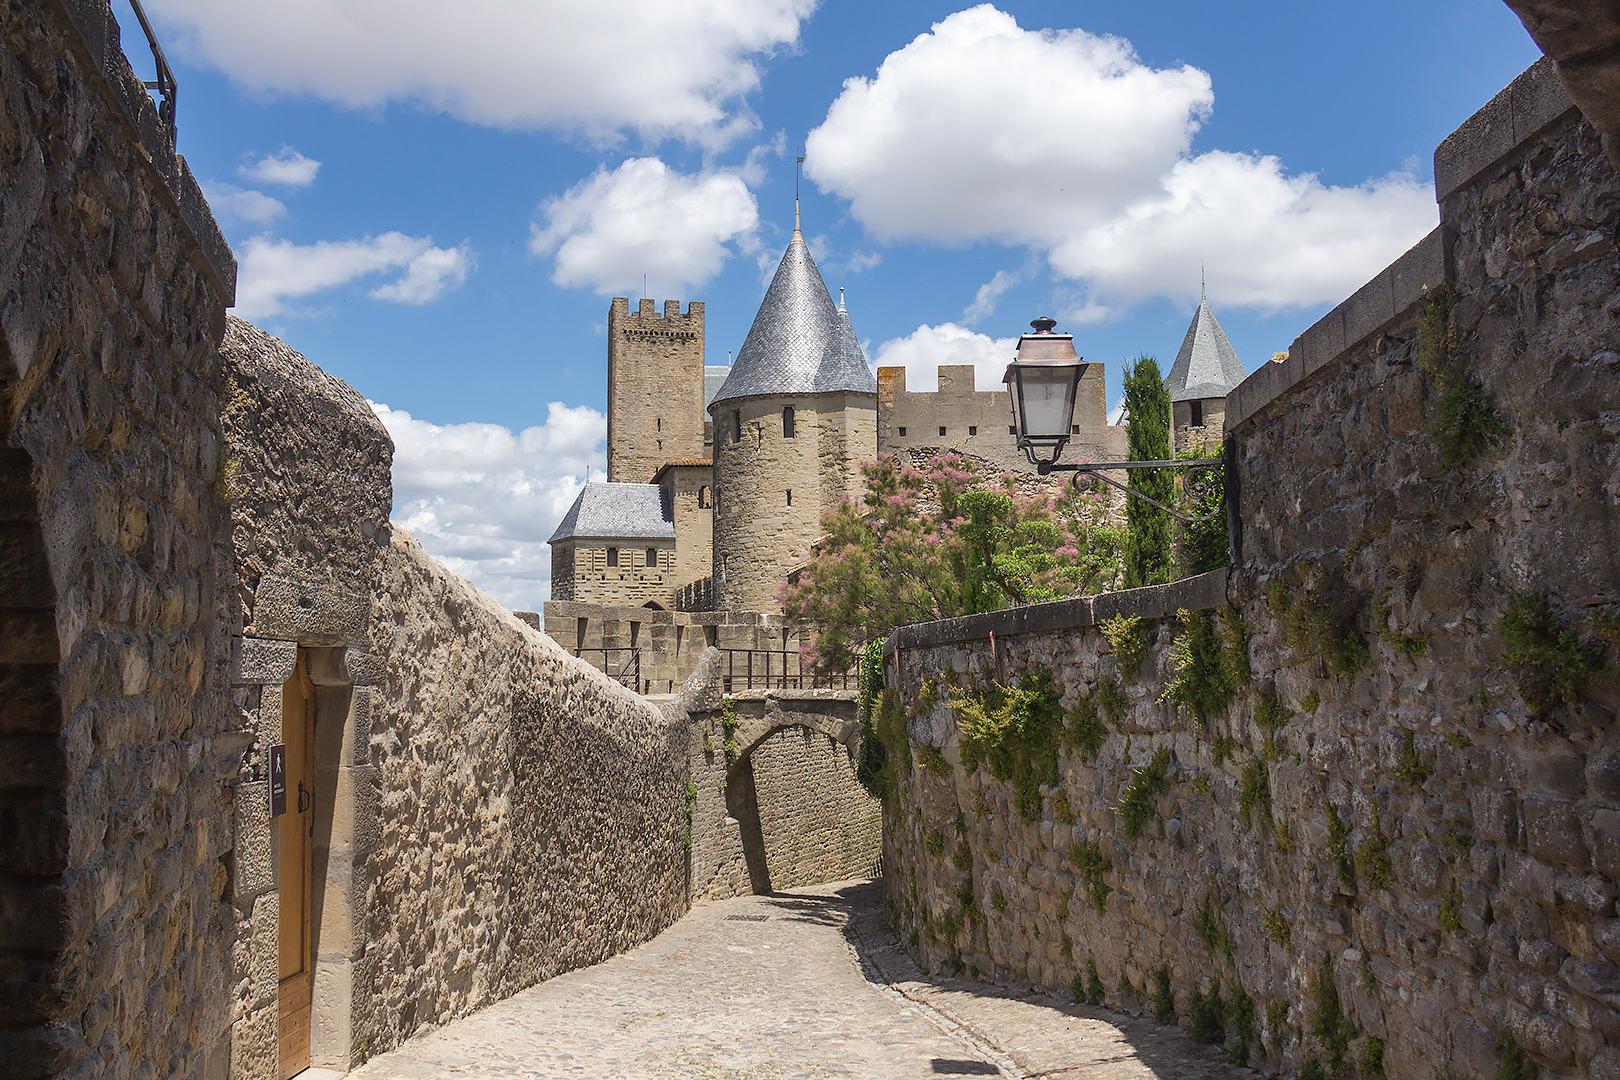 An avenue in the beautiful walled city of Carcassonne